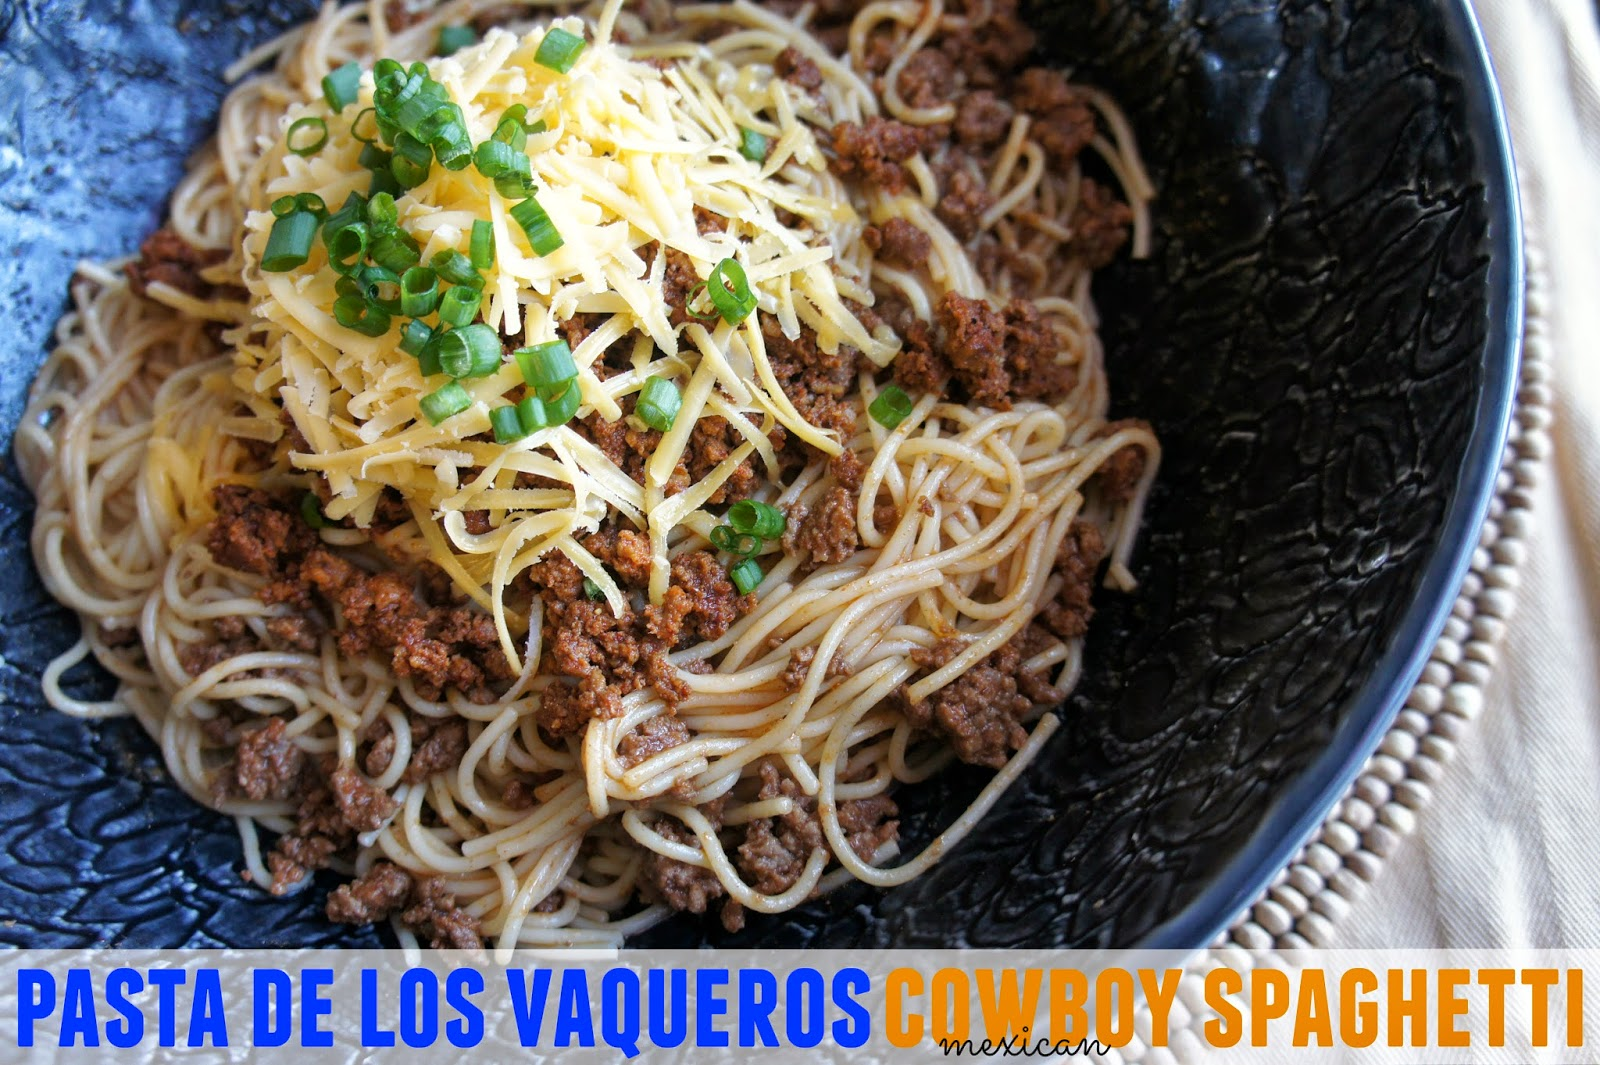 #BarillaFiesta Mexican Cowboy Spaghetti using chorizo, ground sirloin, cheddar and green onions